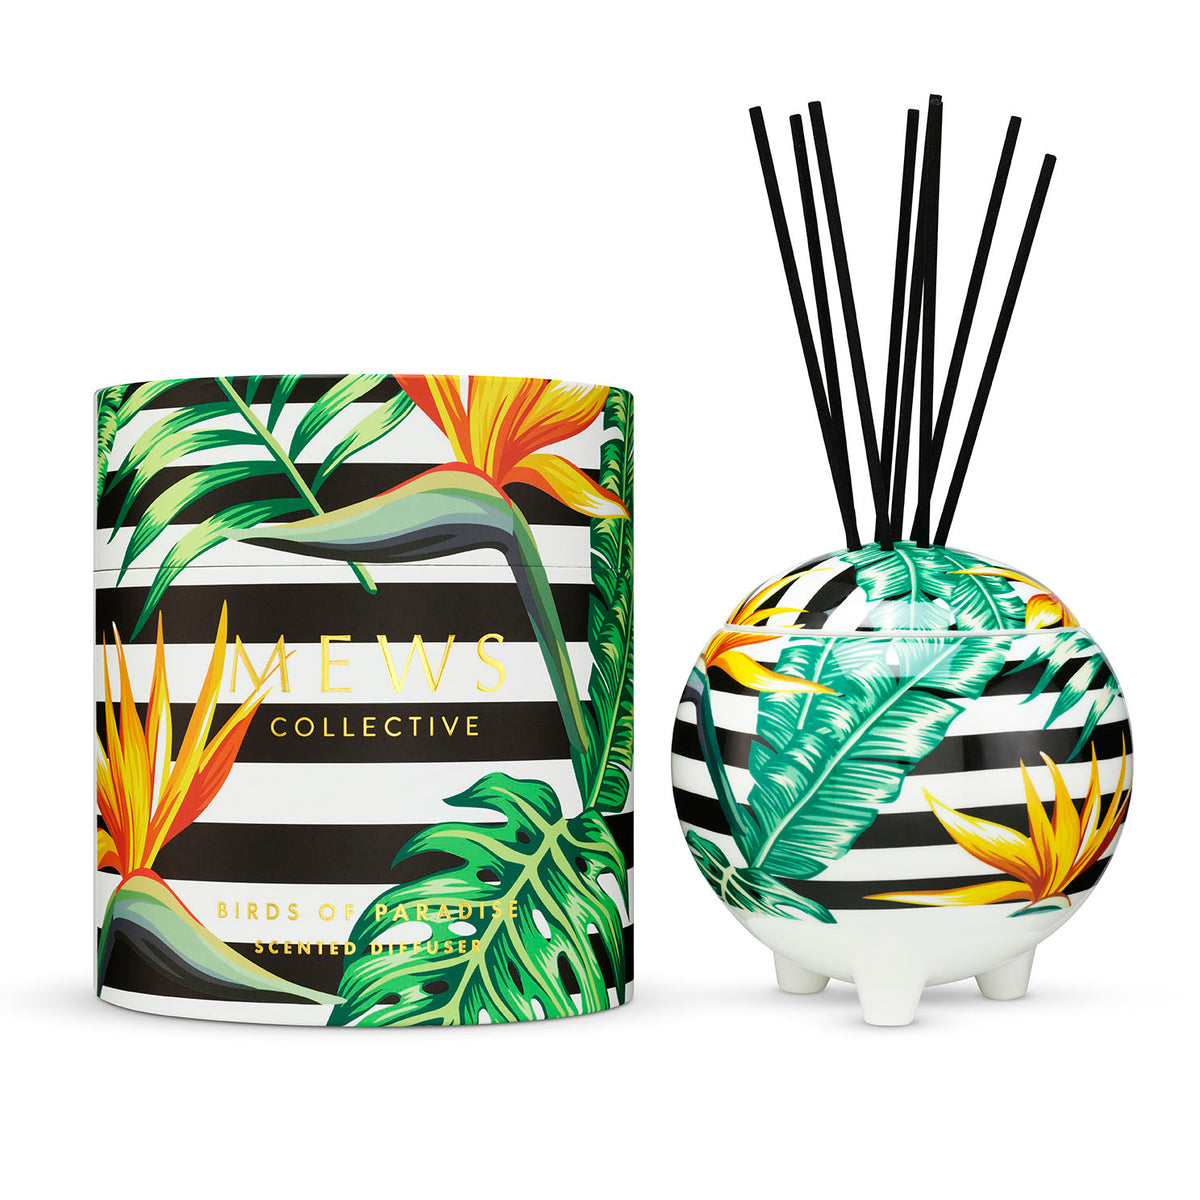 MEWS BIRDS OF PARADISE – SCENTED DIFFUSER 350ml